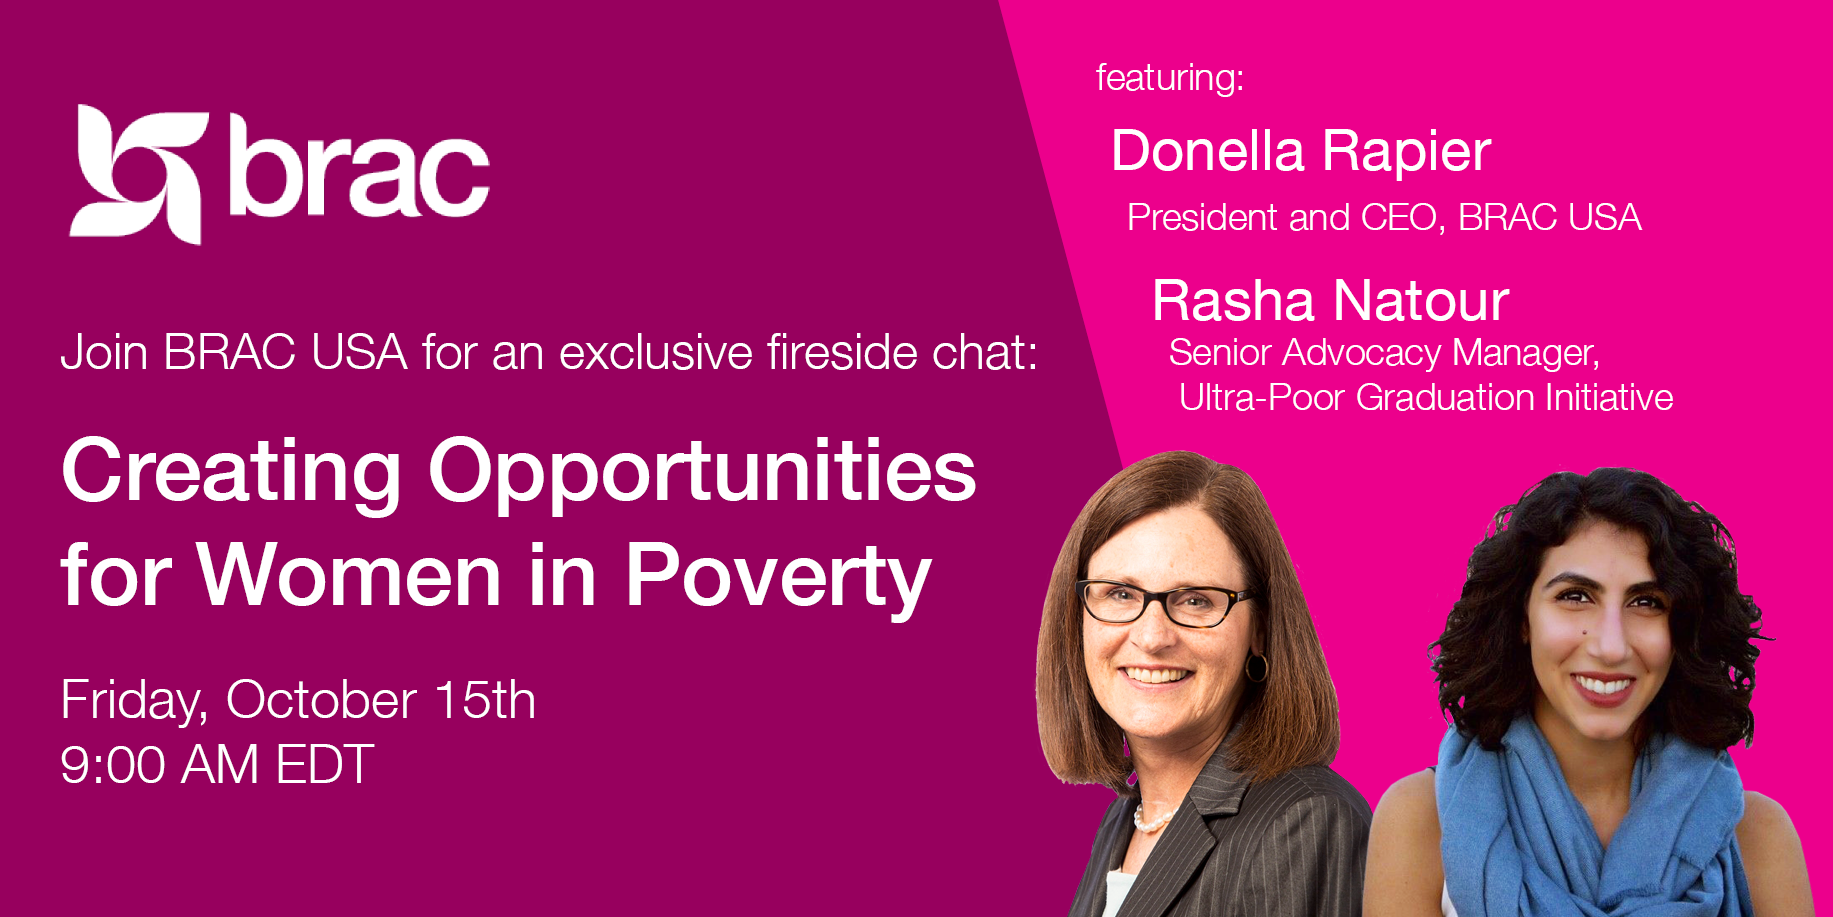 fireside chat with Donella and Rasha